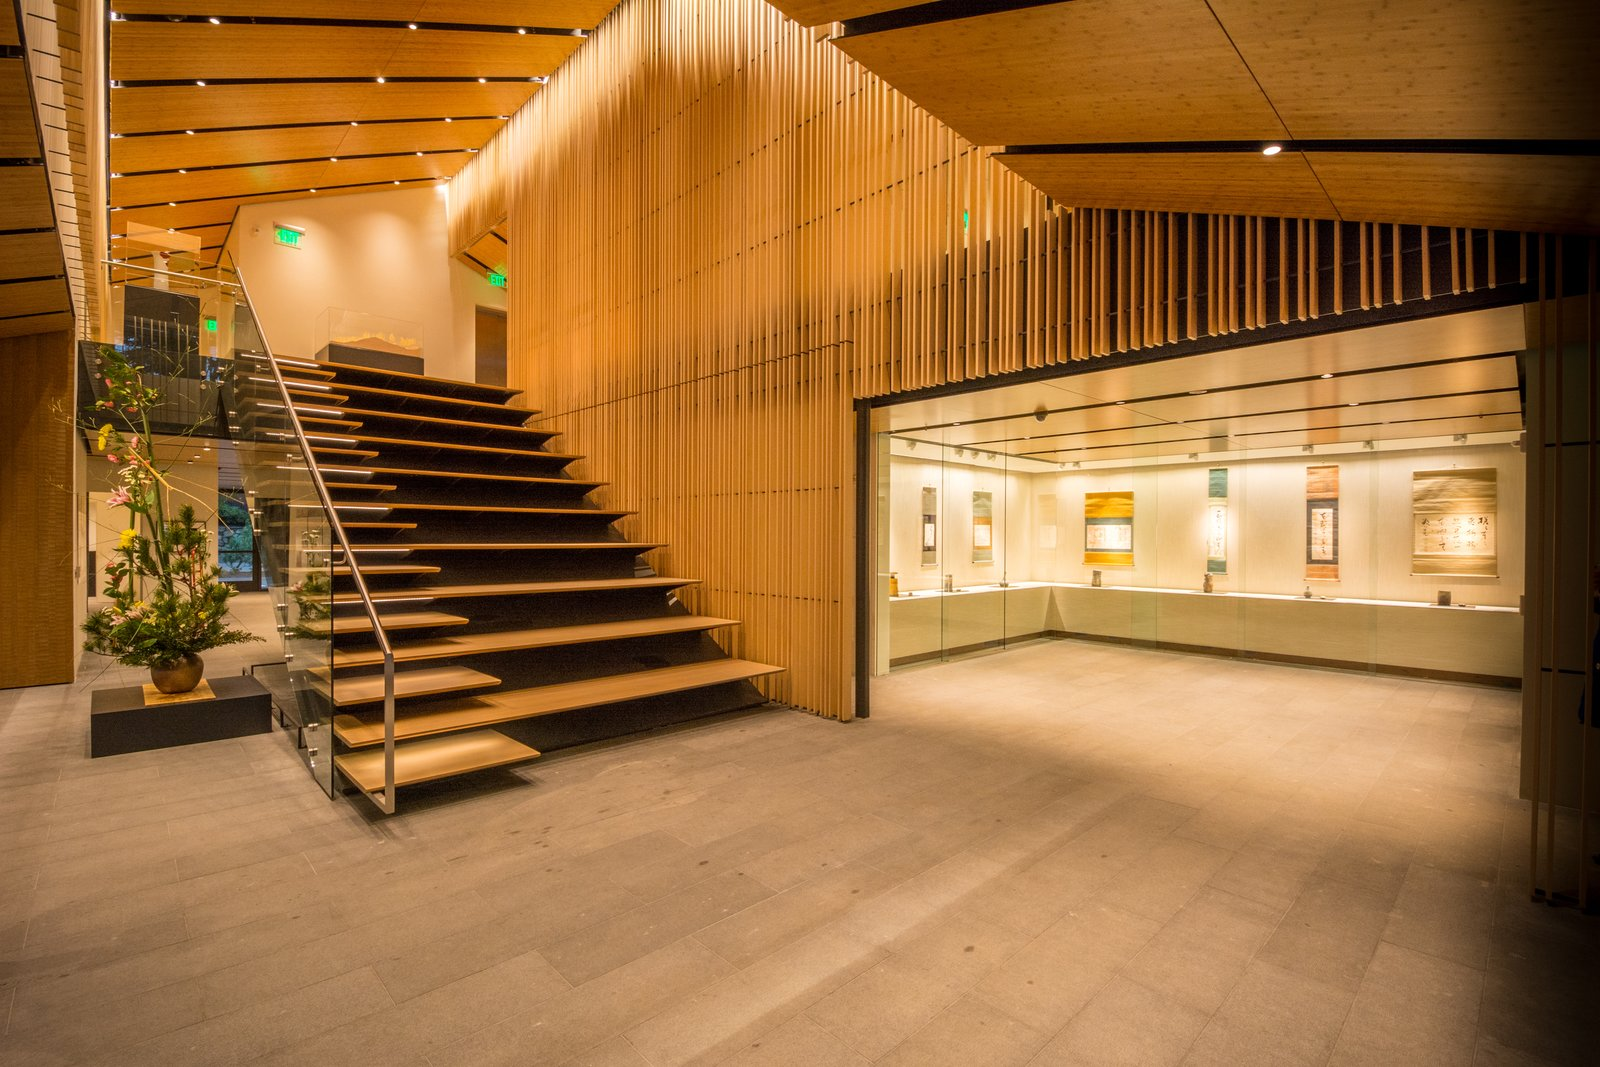 •The Jordan Schnitzer Japanese Arts Learning Center is home to new gallery spaces, a multi-purpose classroom, the Garden gift store and the Vollum Library, a comprehensive resource on Japanese gardening and related arts.